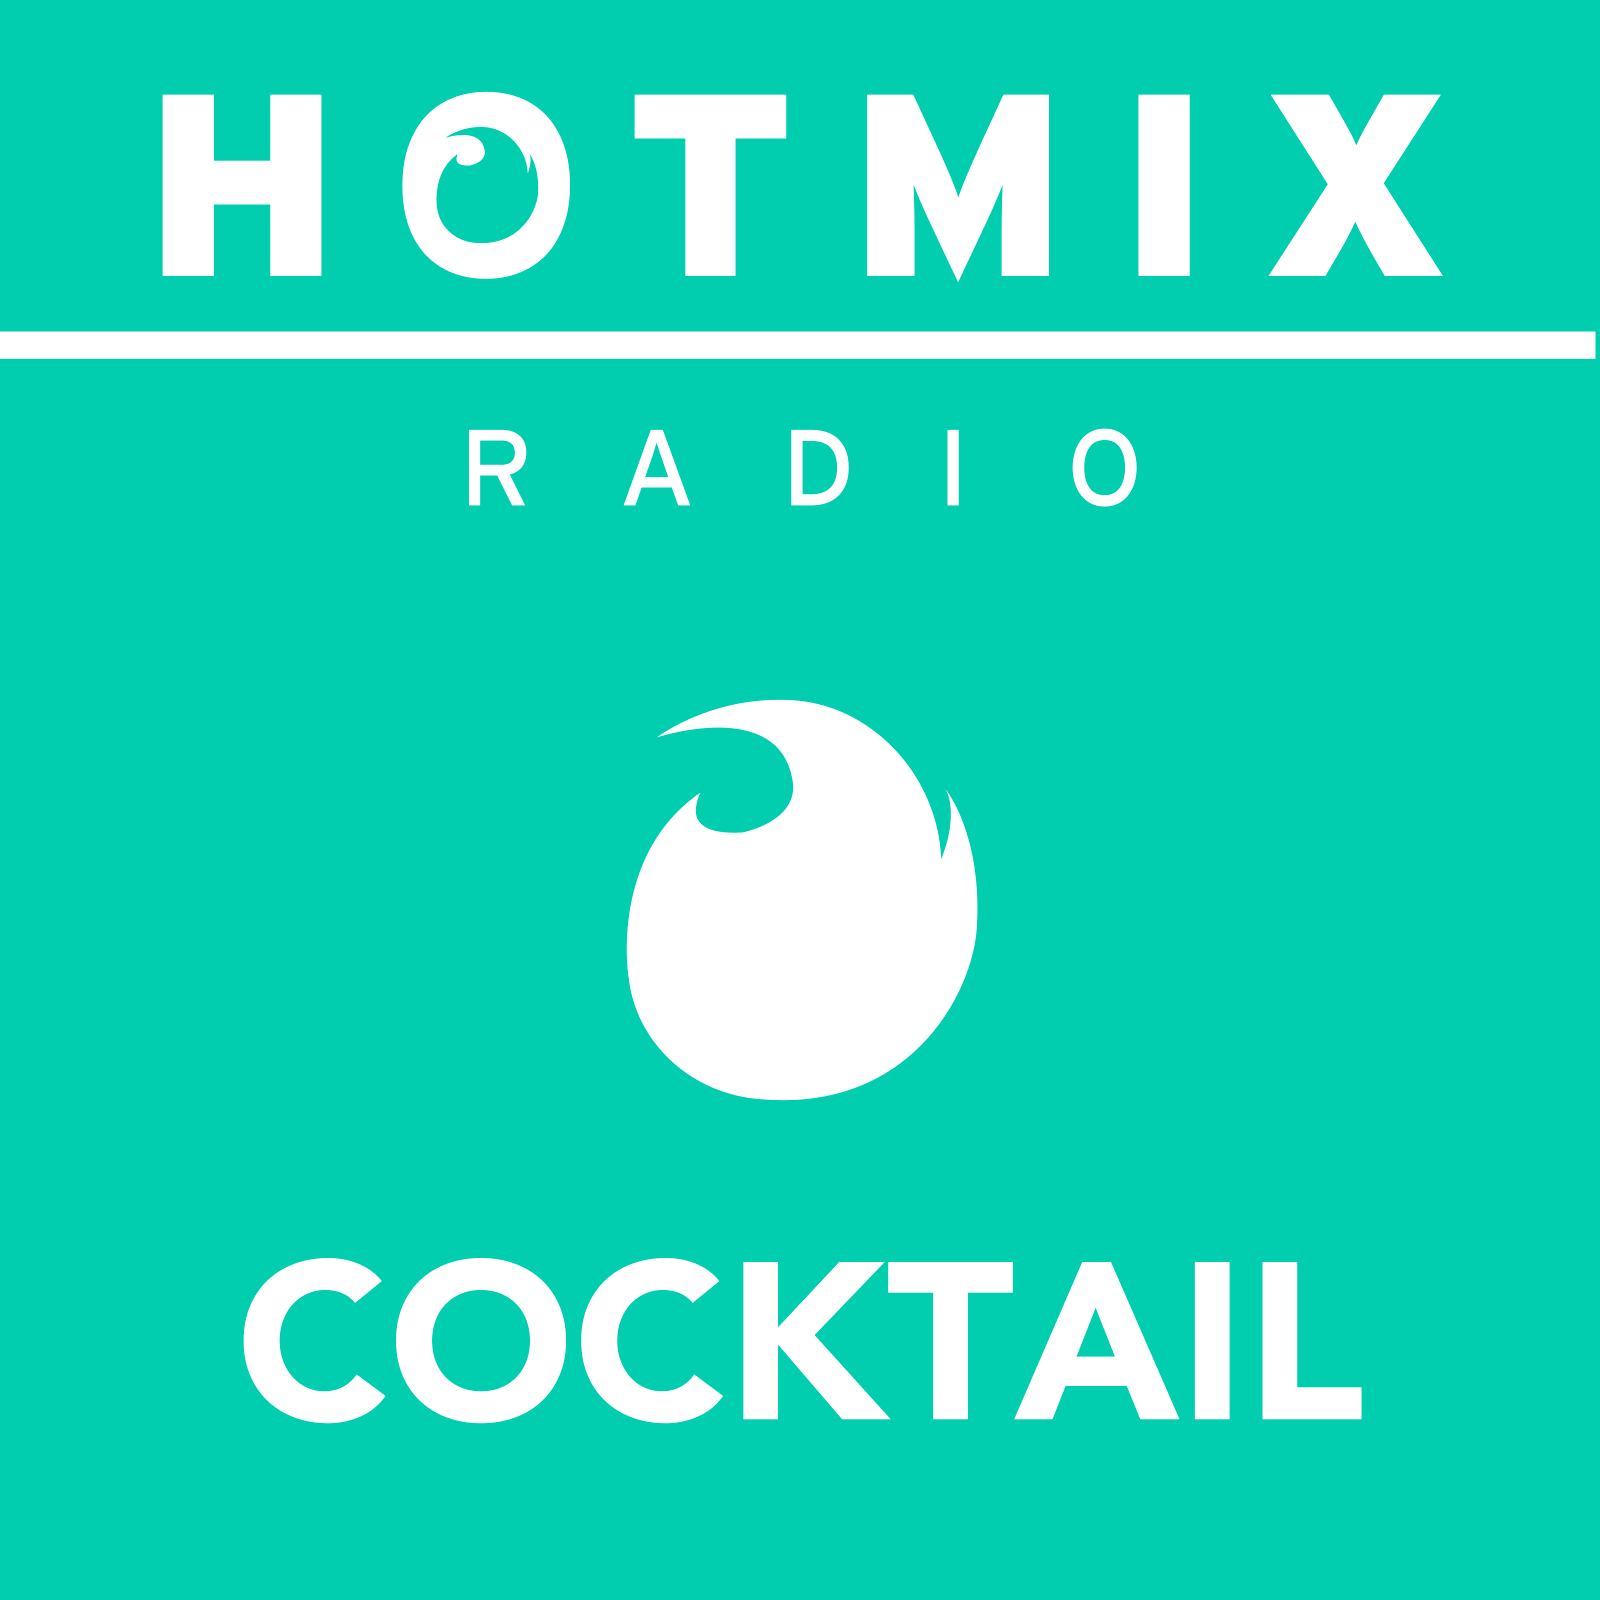 Hotmixradio Cocktail